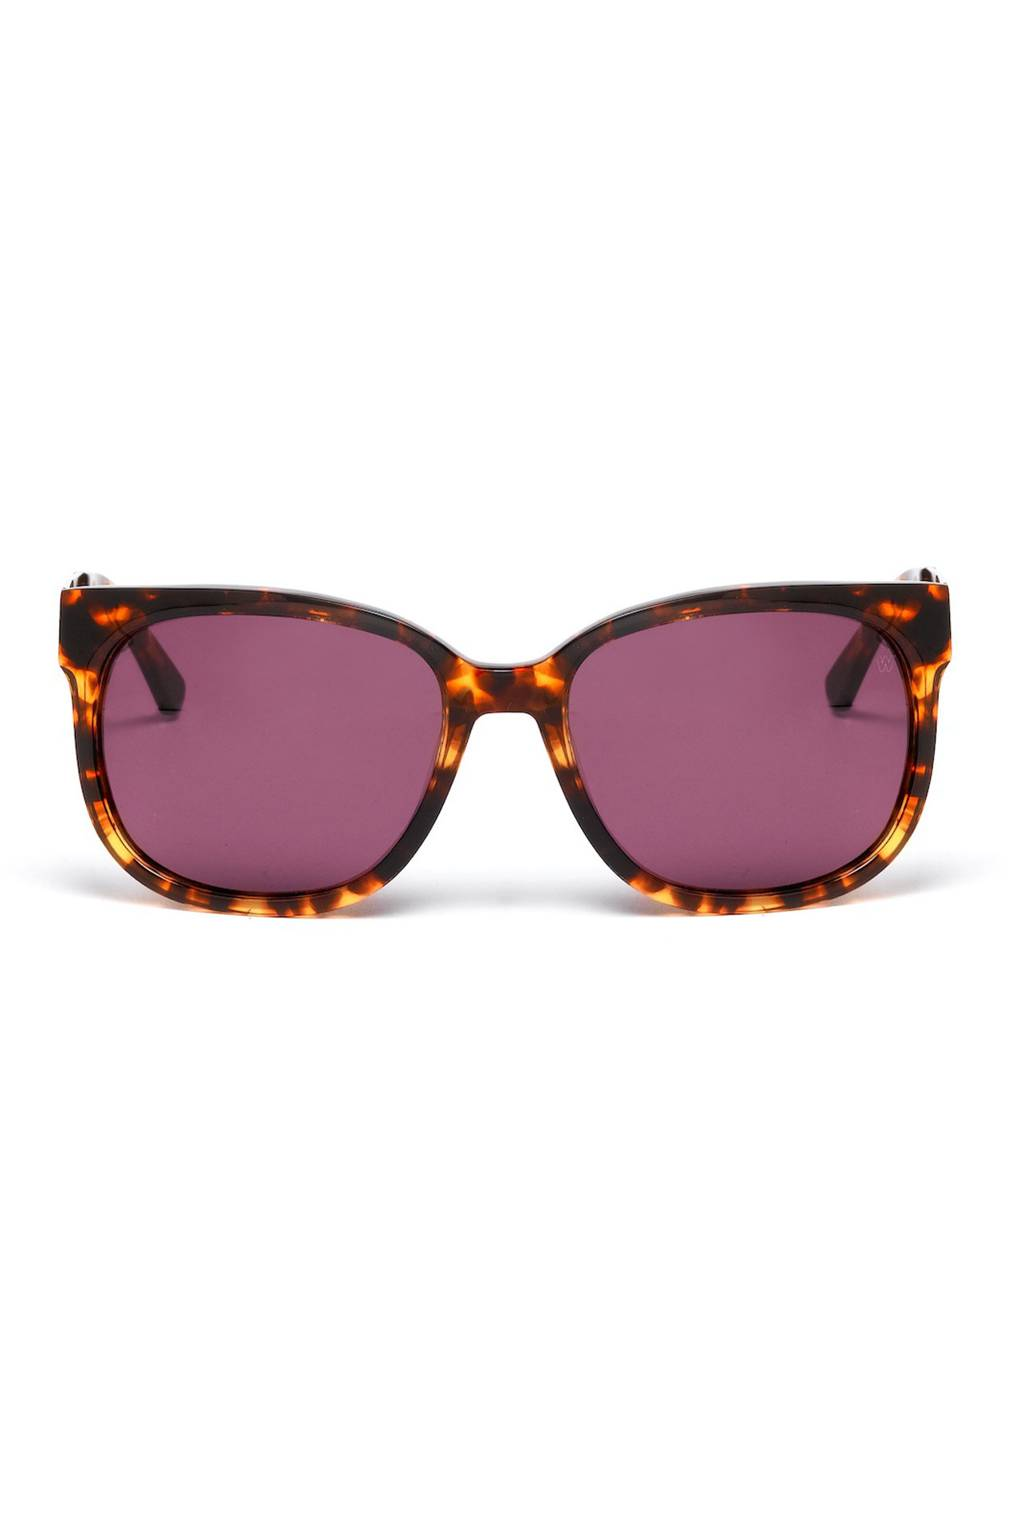 lunette thierry lasry femme